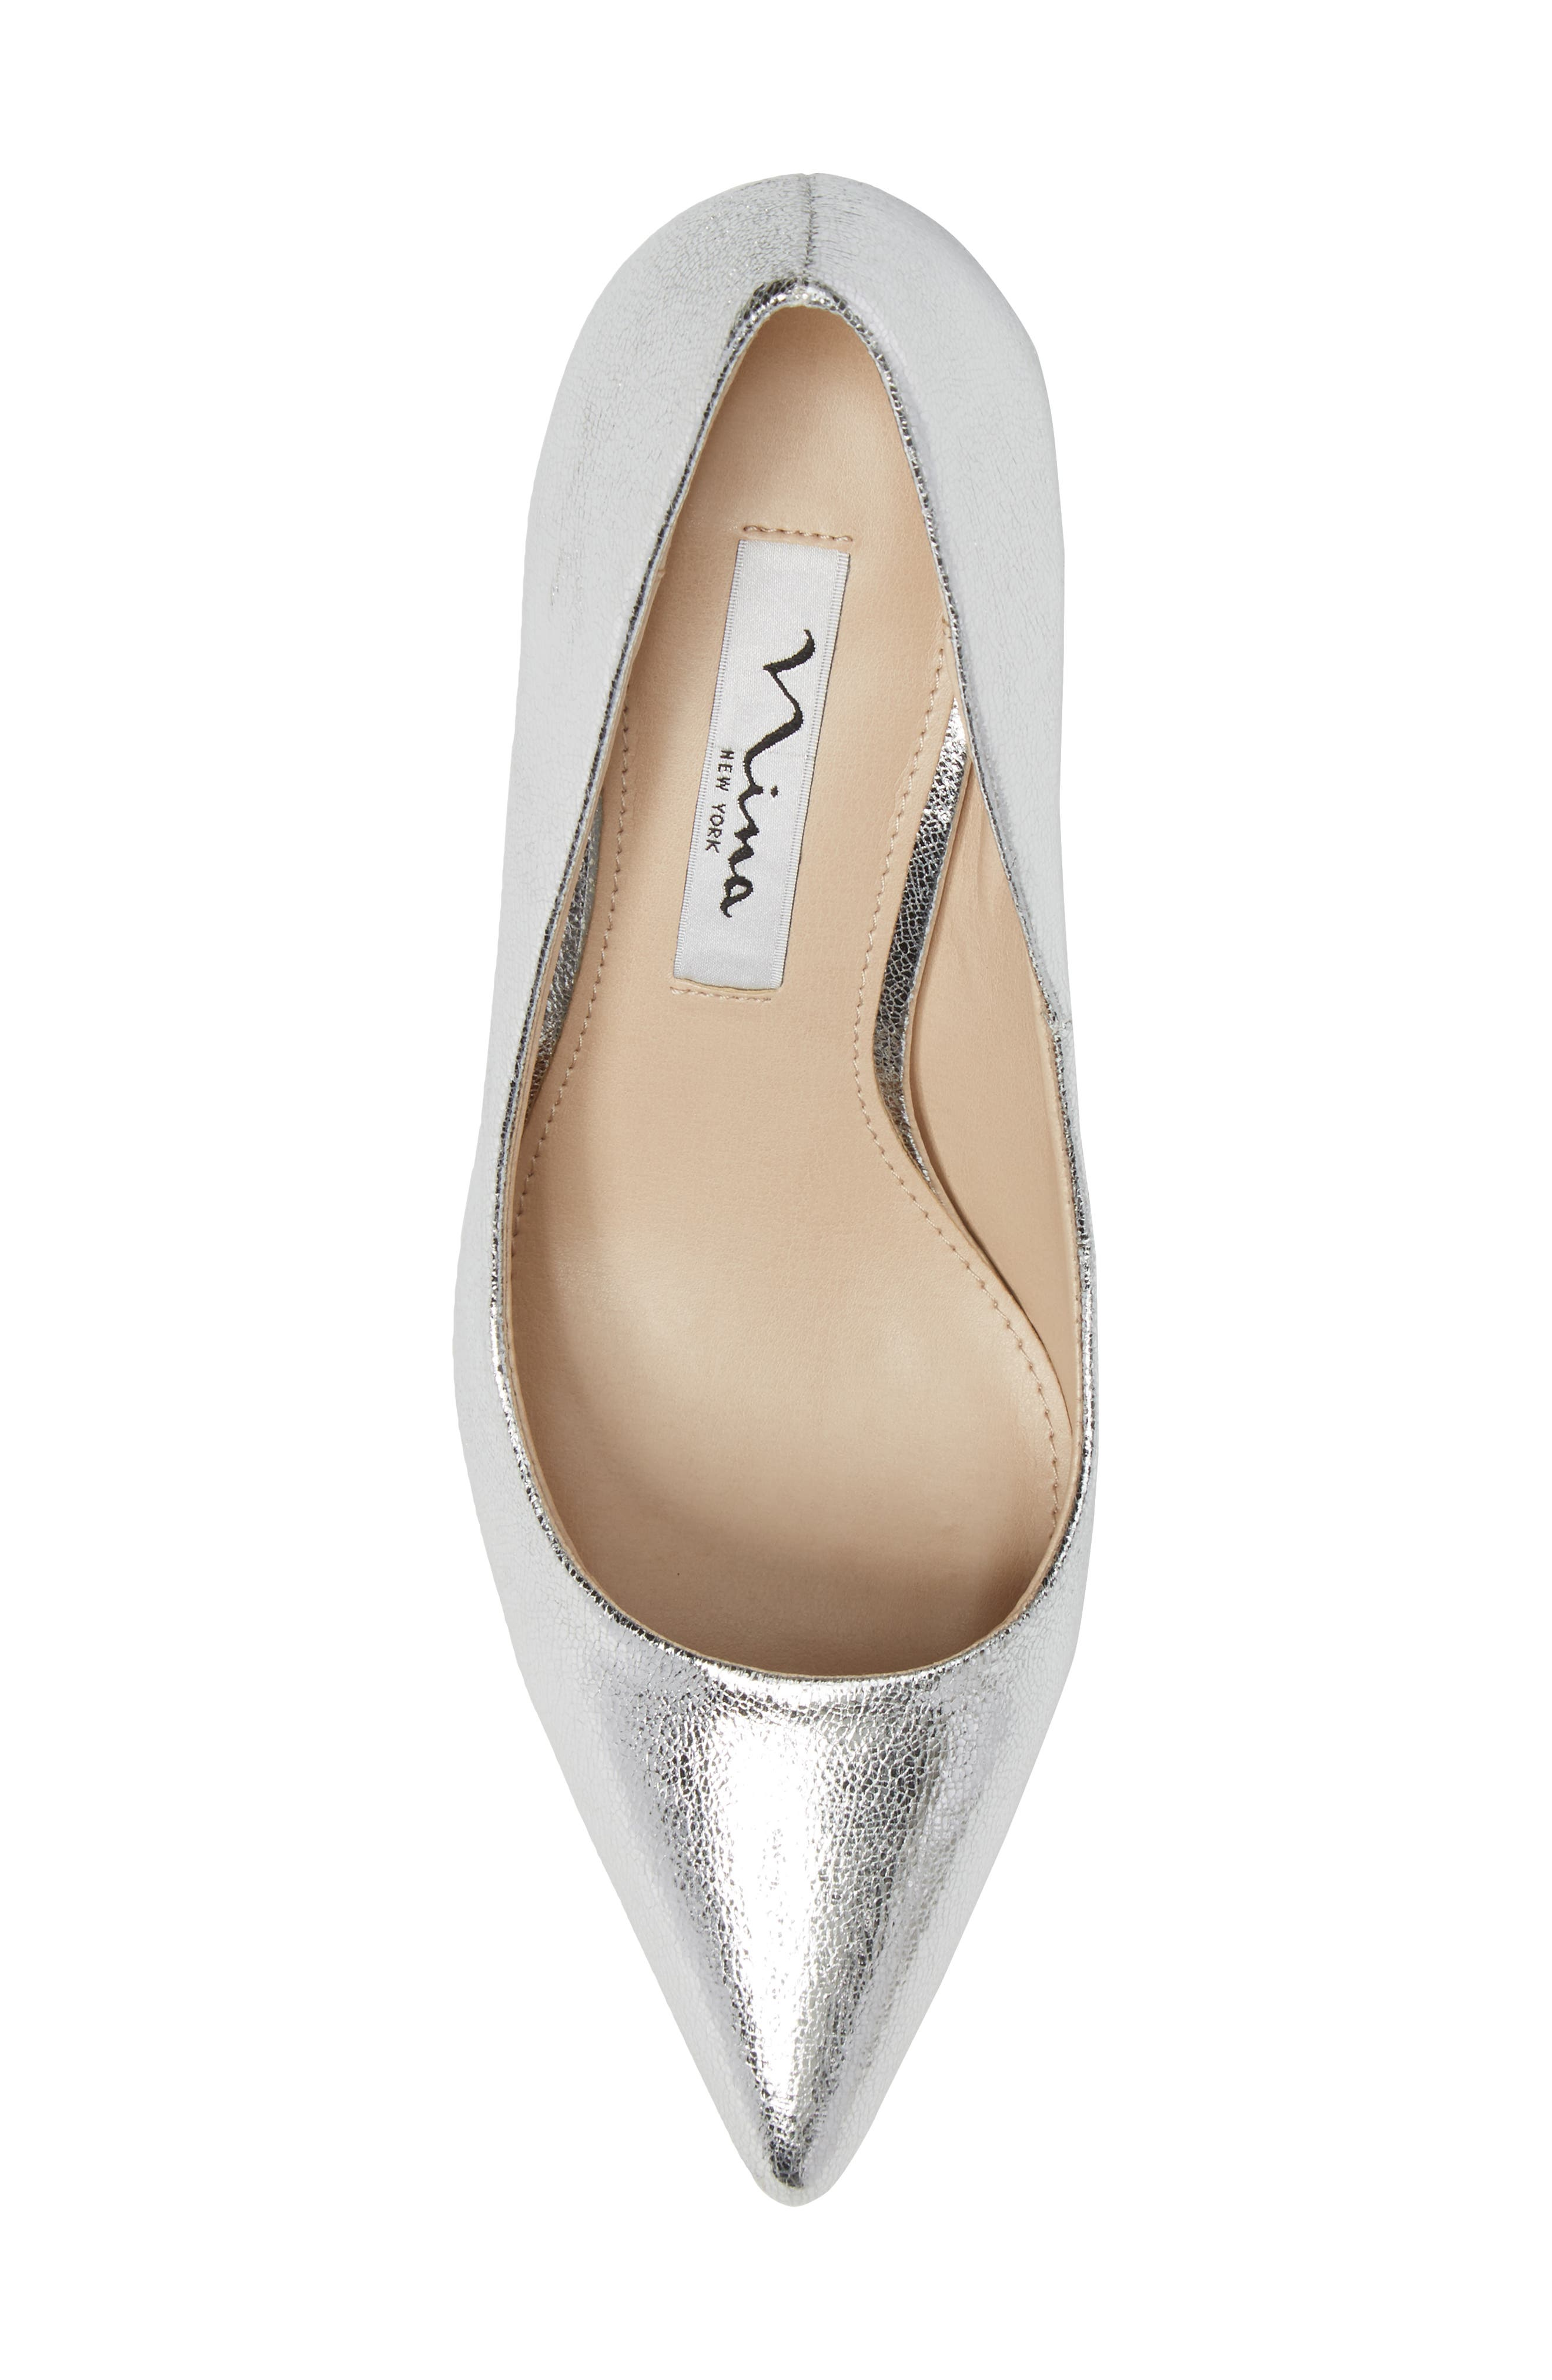 Tinsley Pointy Toe Pump,                             Alternate thumbnail 5, color,                             Silver Fabric